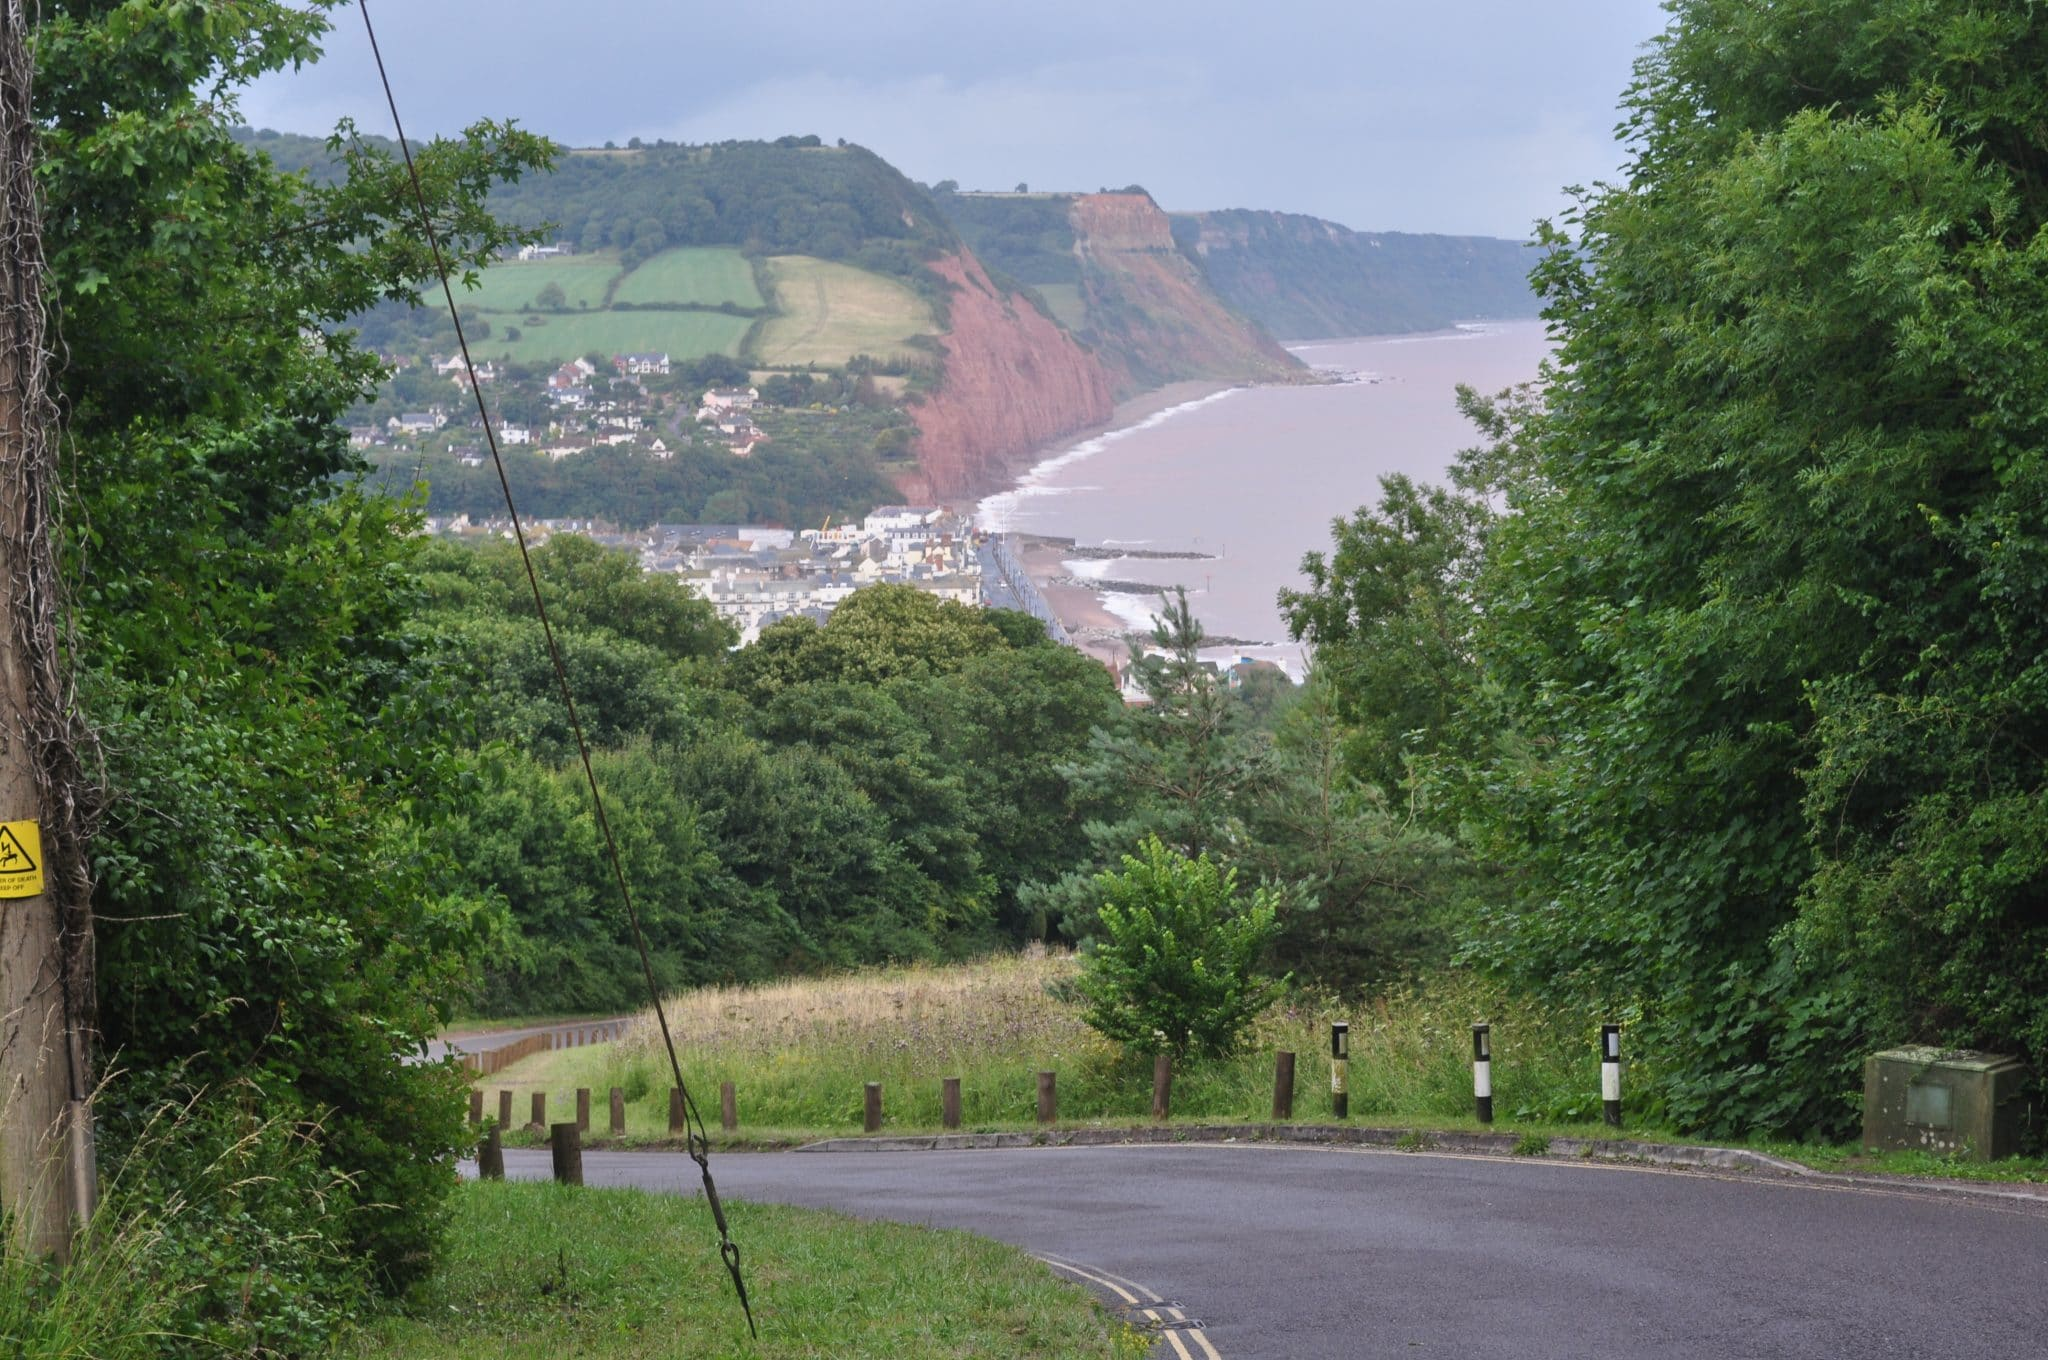 Photo looking down into Sidmouth from Peak Hill with the town in the bottom of the valley and the sea and red cliffs in the background